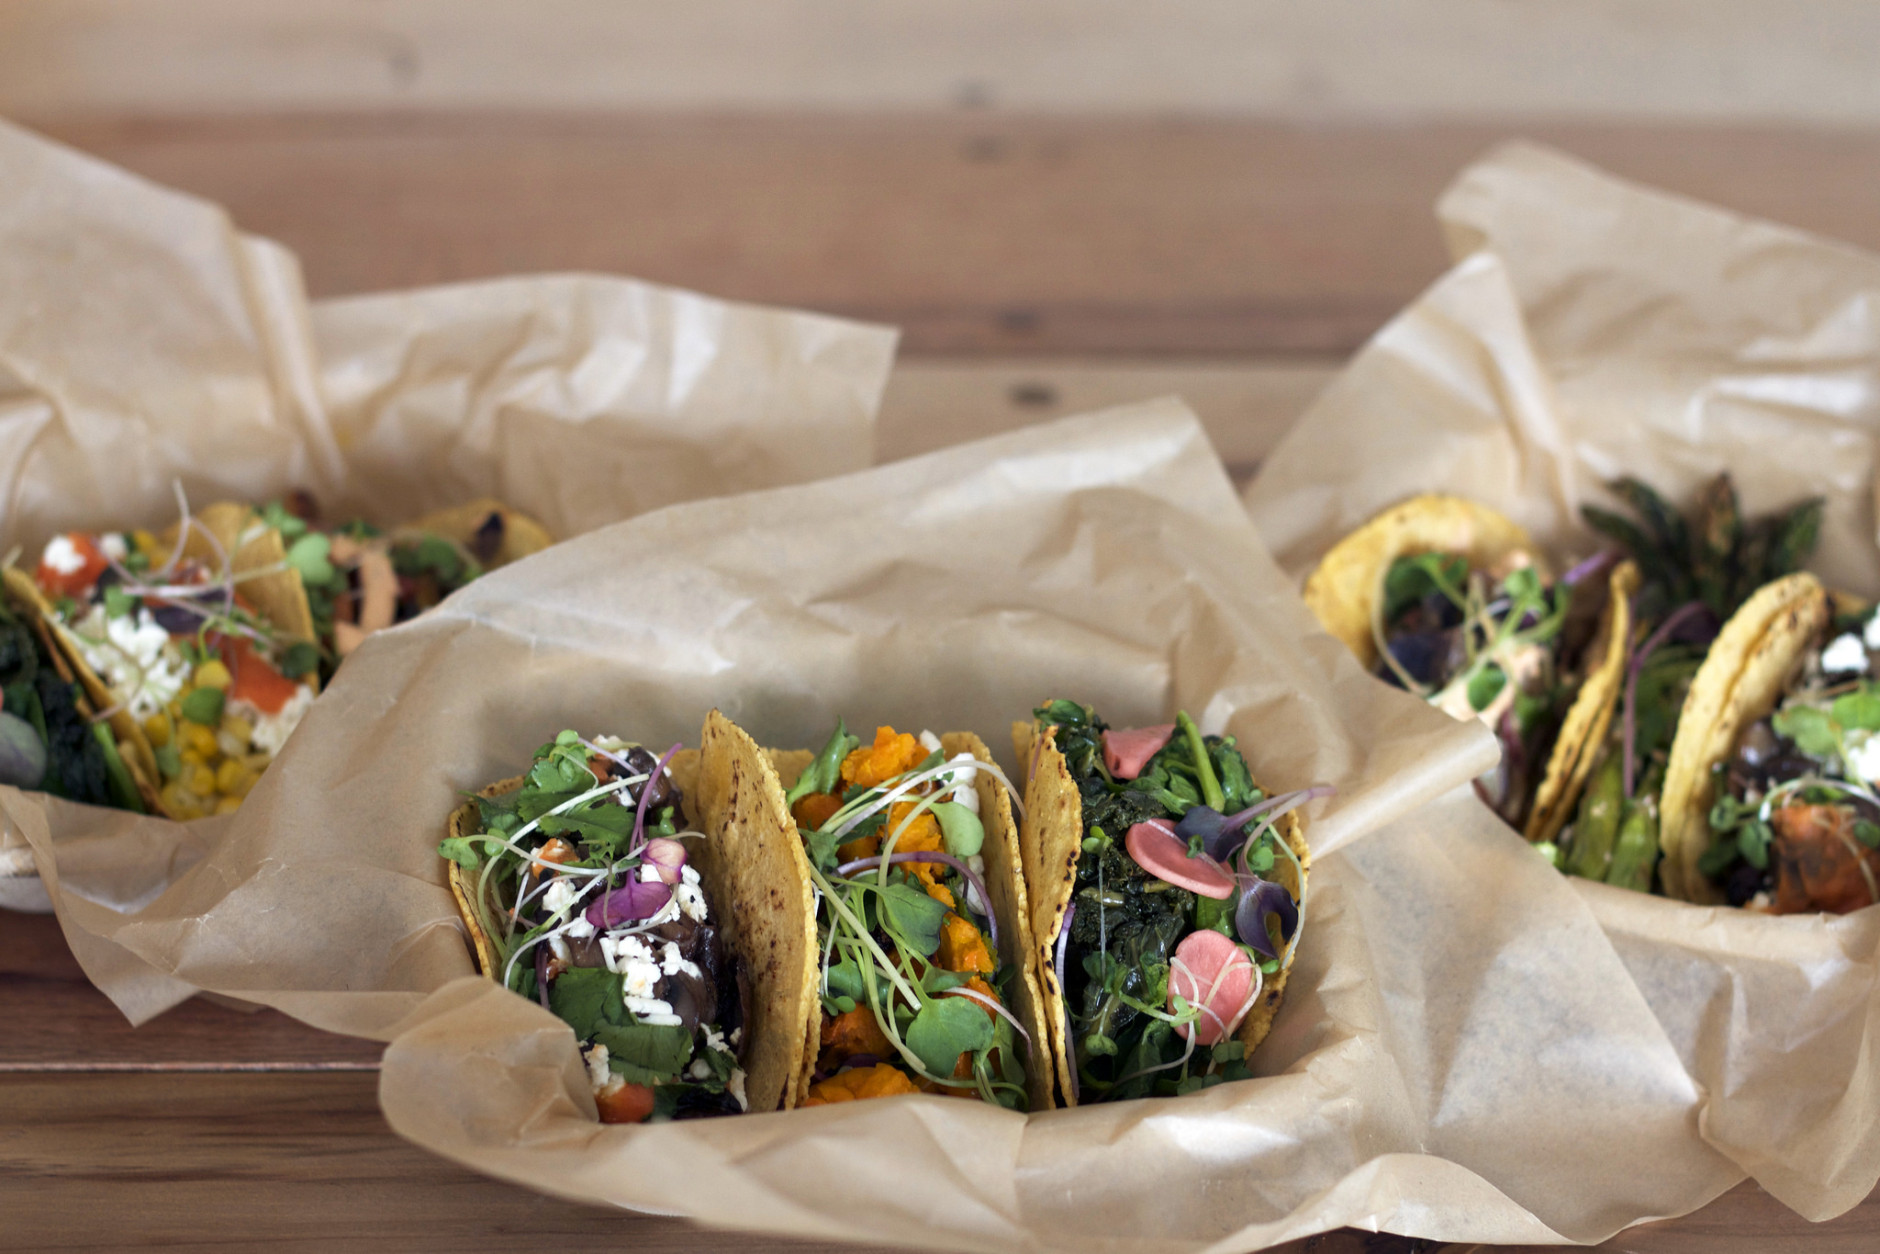 This season, D.C. is welcoming two new — and distinctly different, yet authentic — taco spots. (Courtesy Chaia)